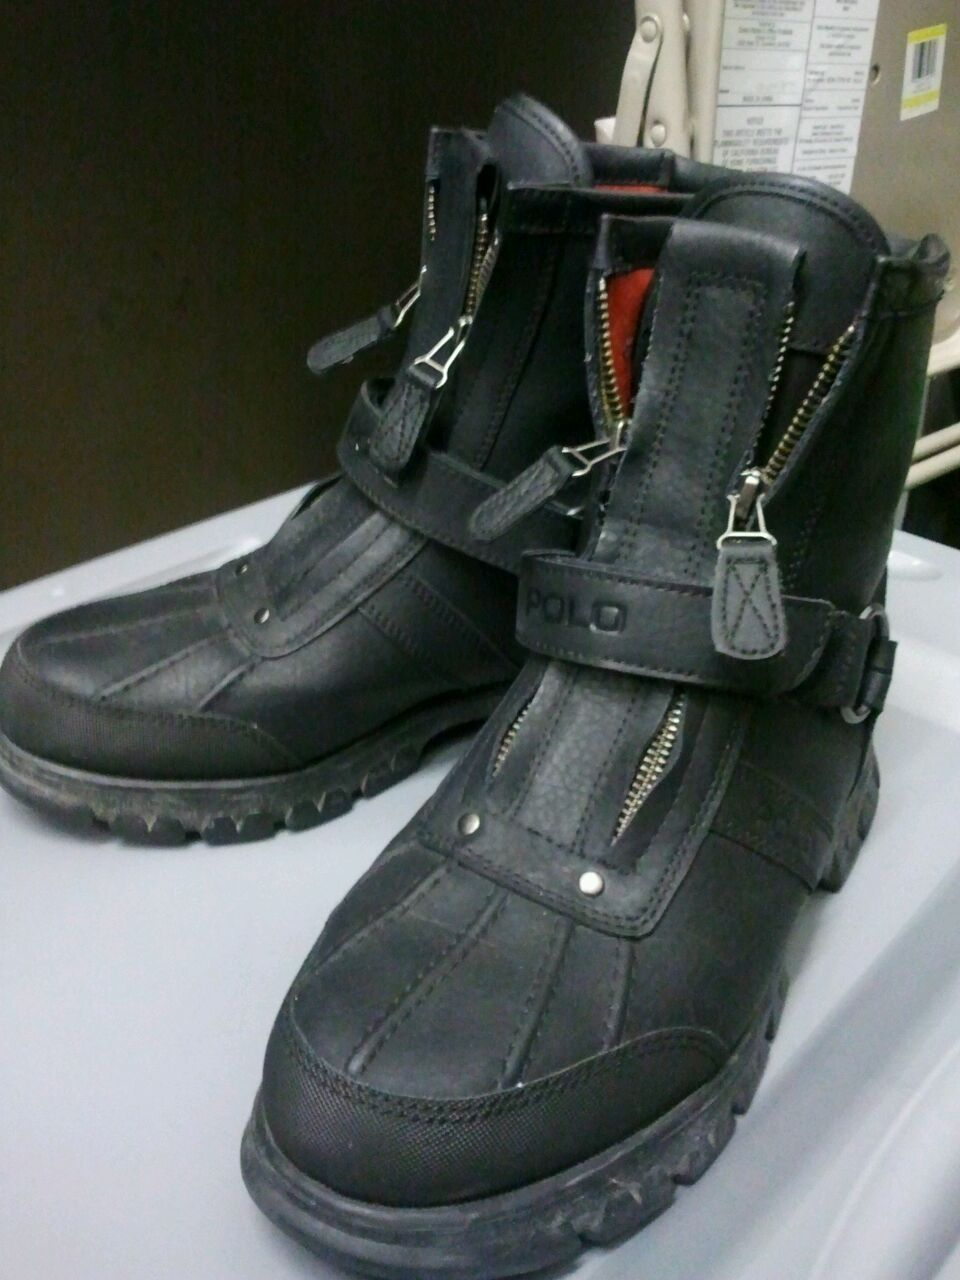 POLO boots! Size 8 1/2 $40!